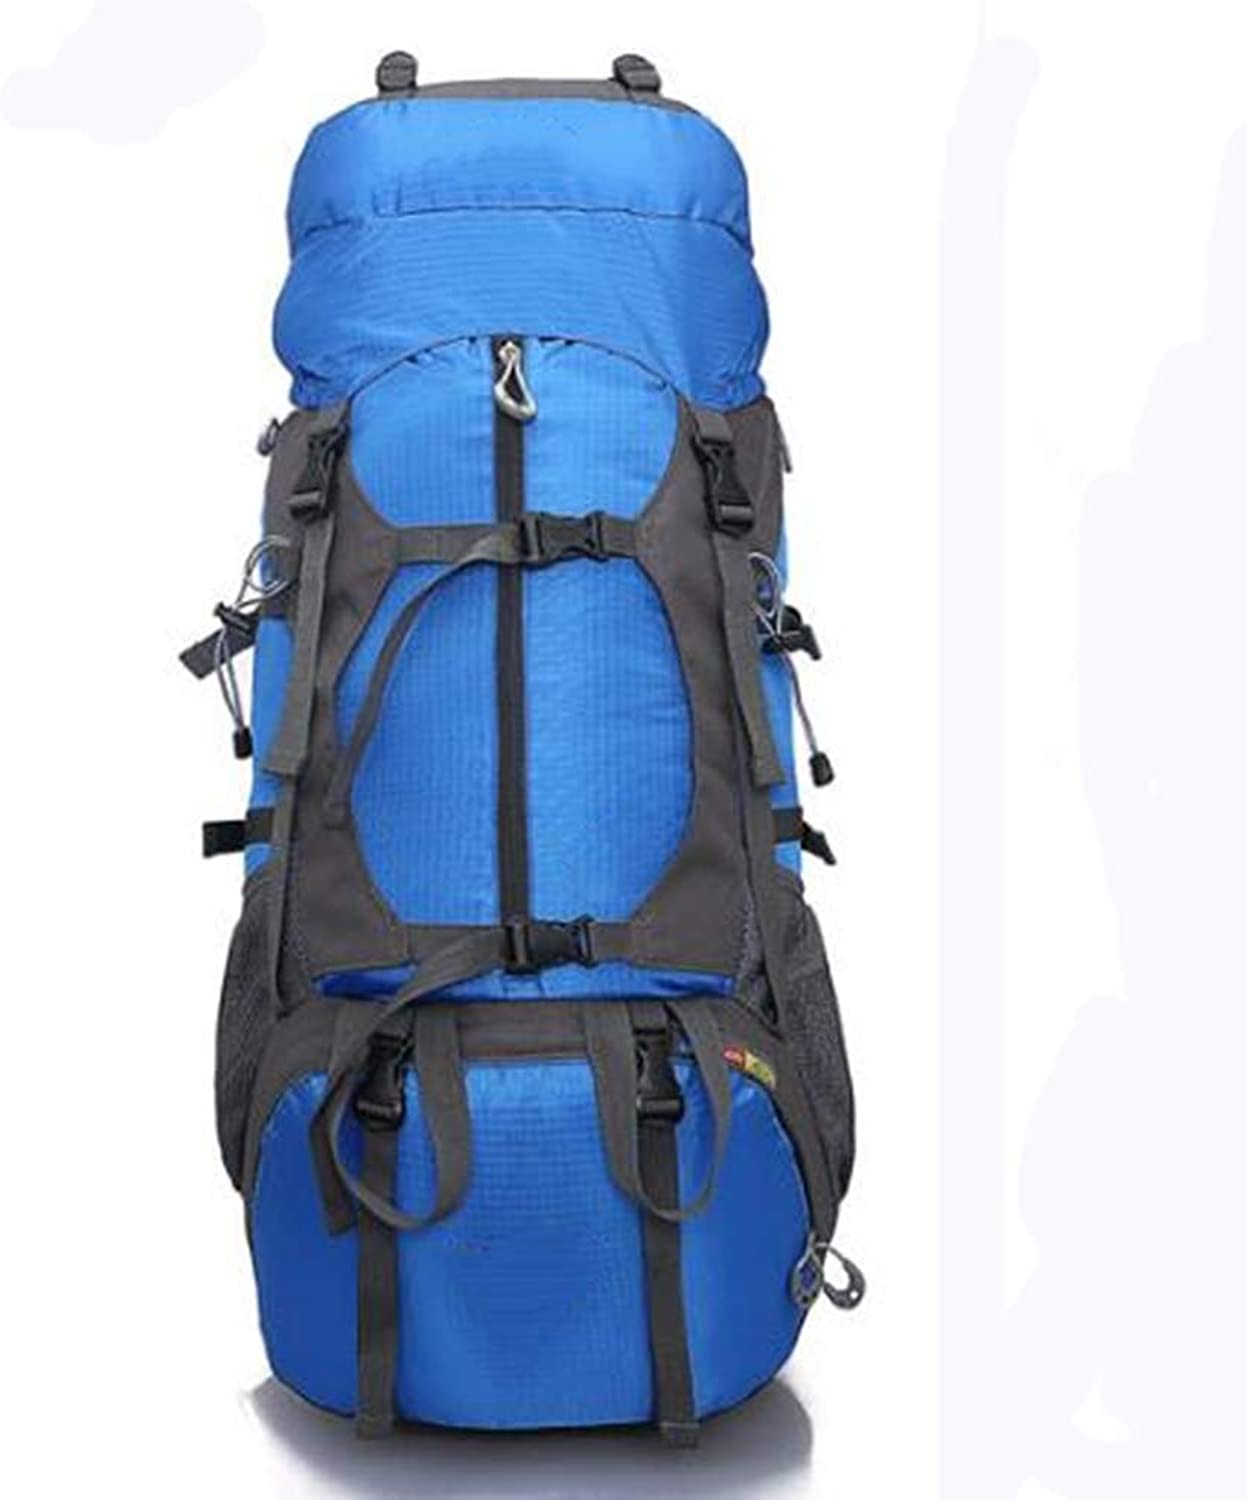 FDQS Outdoor Sport Camping Wanderrucksack Picnic Outdoor Mountaineering Bag Hiking Camping Supplies Large Capacity Rain-Proof Cover Shoulder Backpack